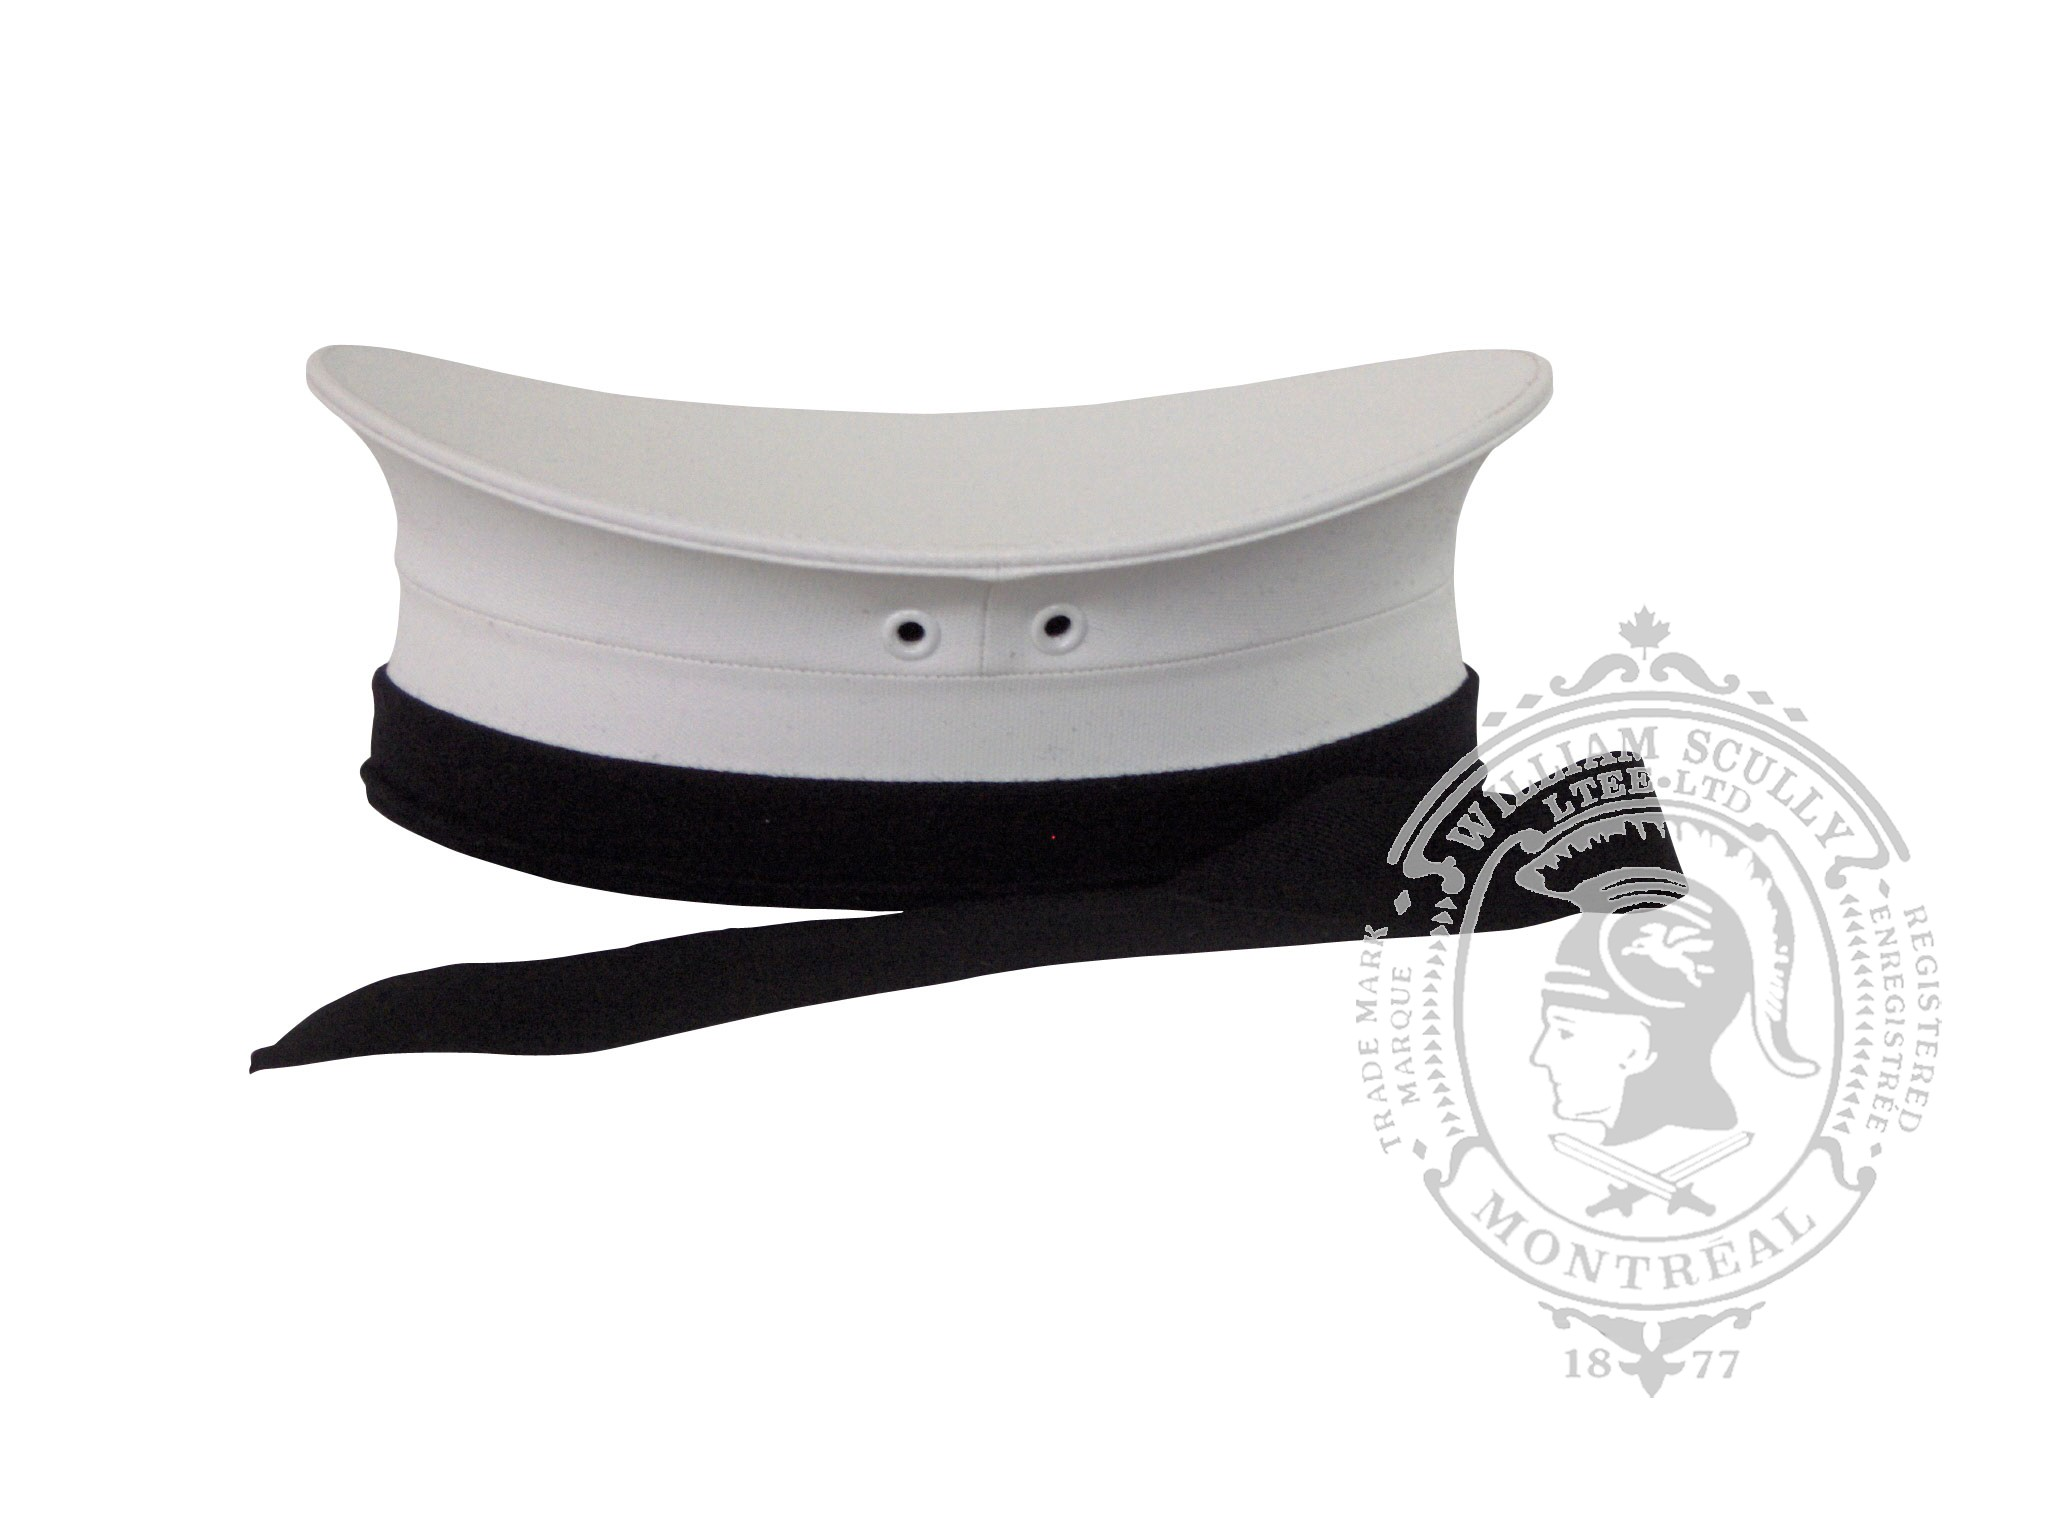 5-1001 Cadet Seaman Cap / Tourmaline / Scottish Hornpipe